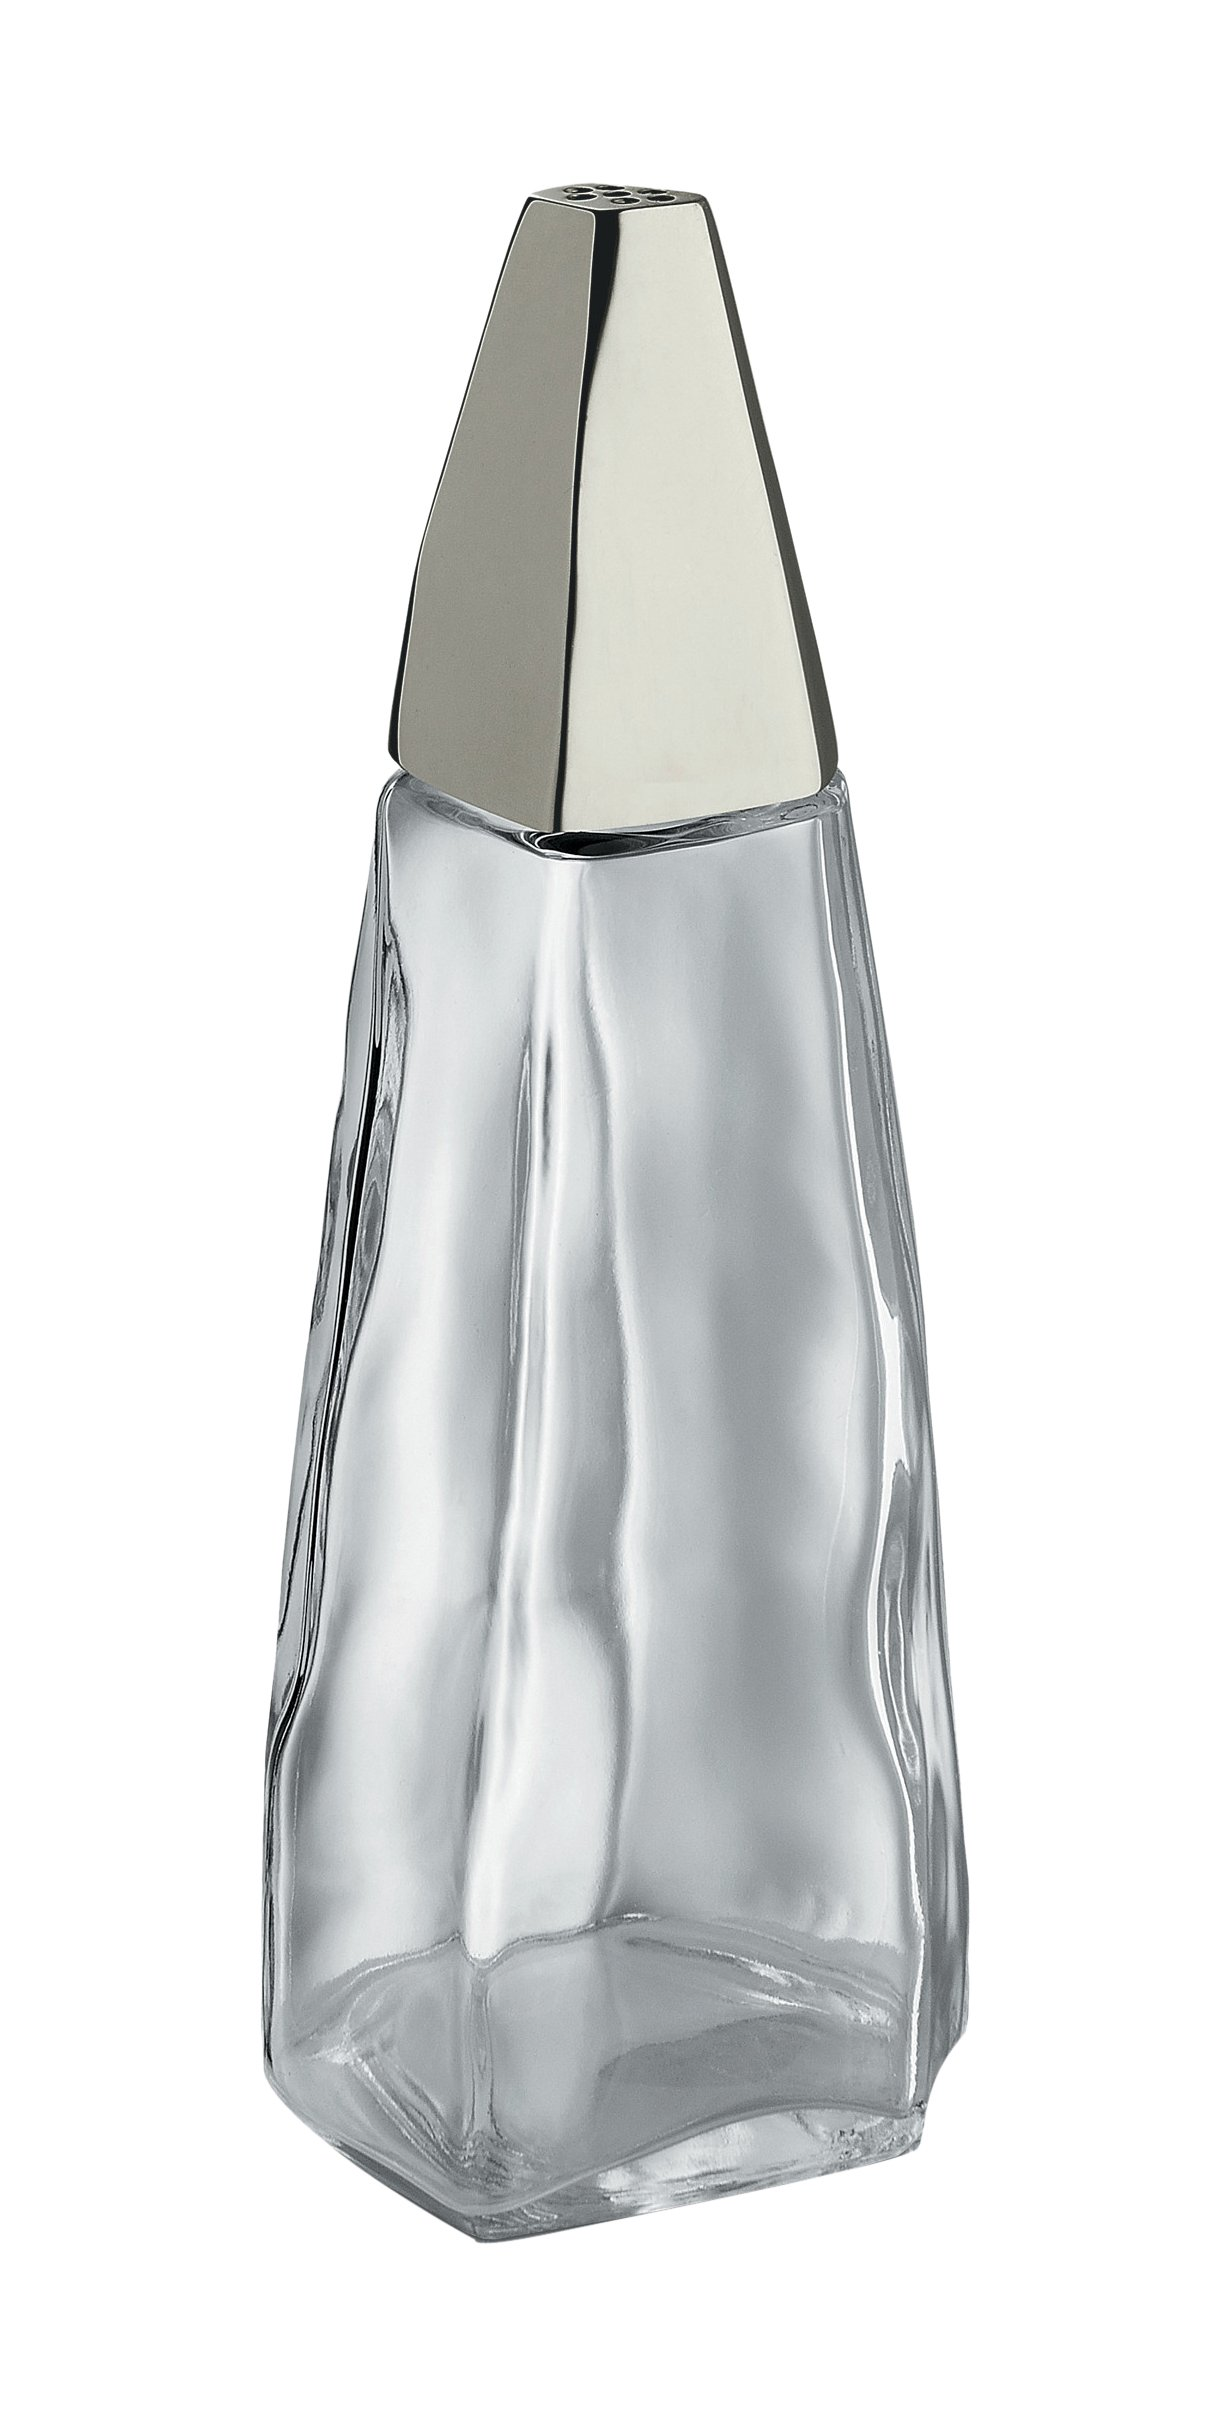 Alessi Salt Castor in Glass And 18/10 Stainless Steel, Transparent